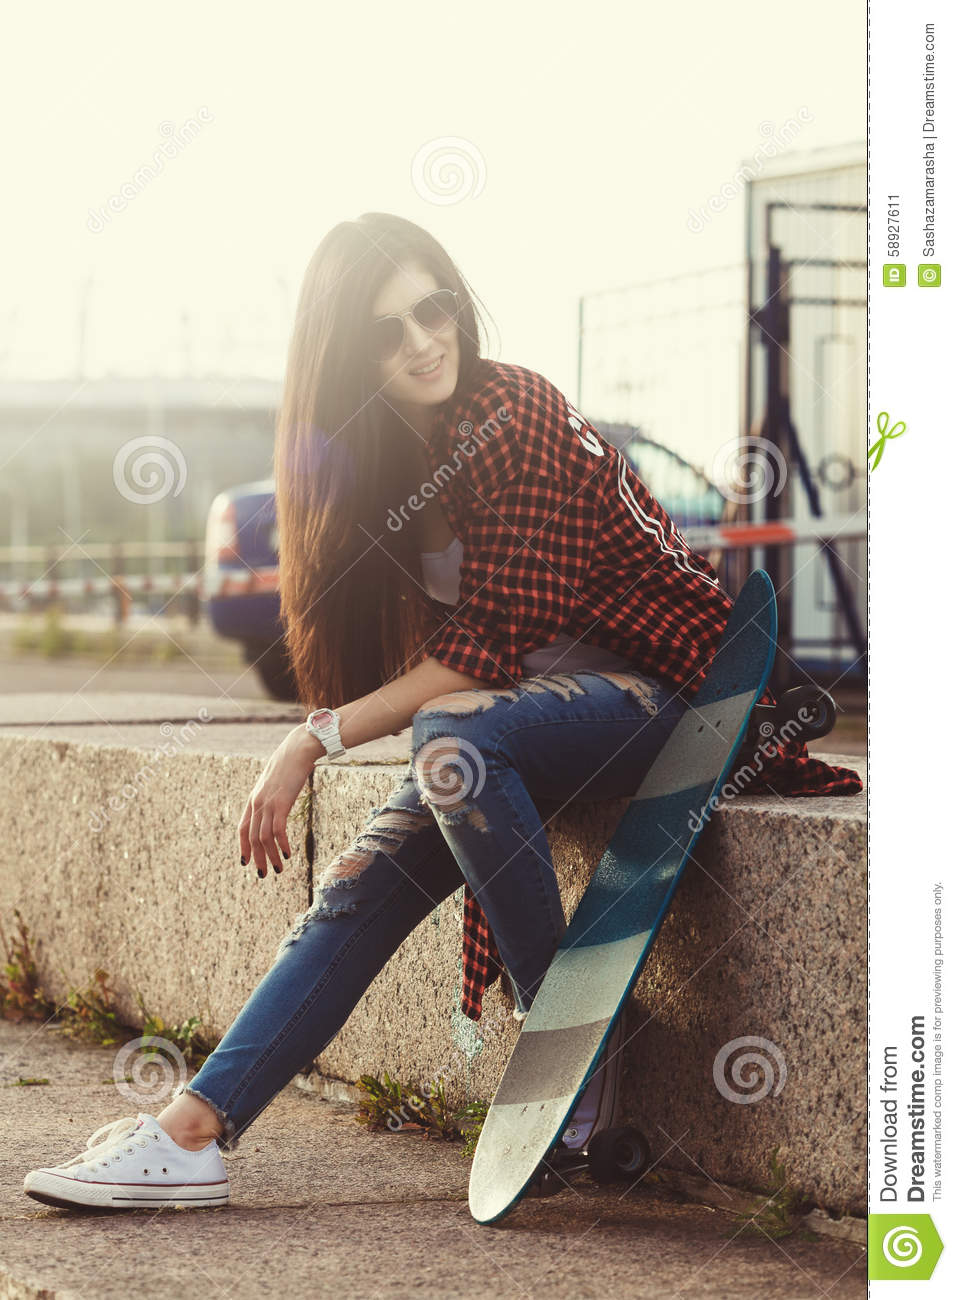 Young Swag Girl With Skateboard Posing At Street Stock Image